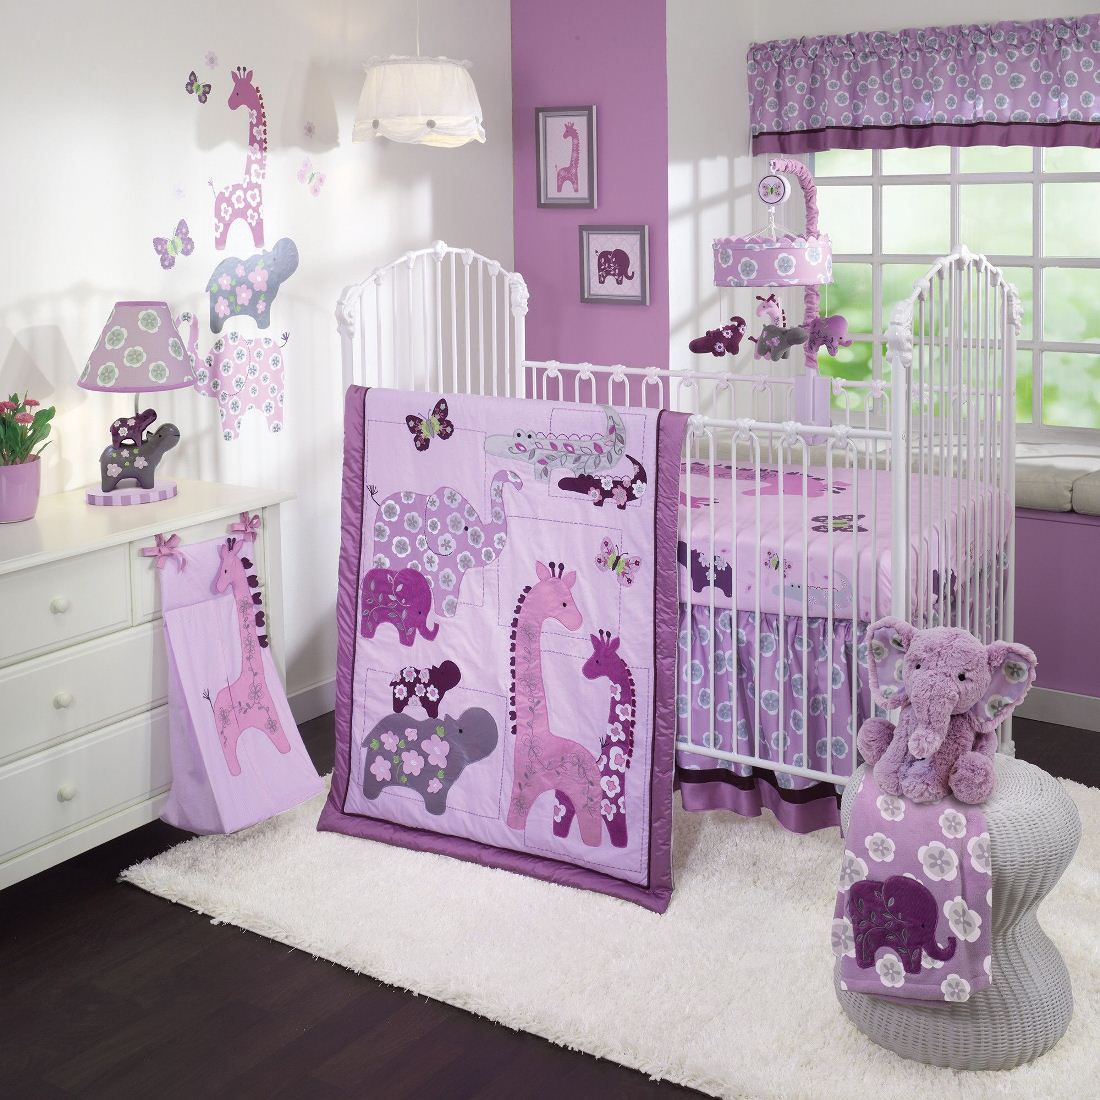 Butterfly Bedroom Themes Purple Baby Girl Nursery Decorating Ideas With Jungle